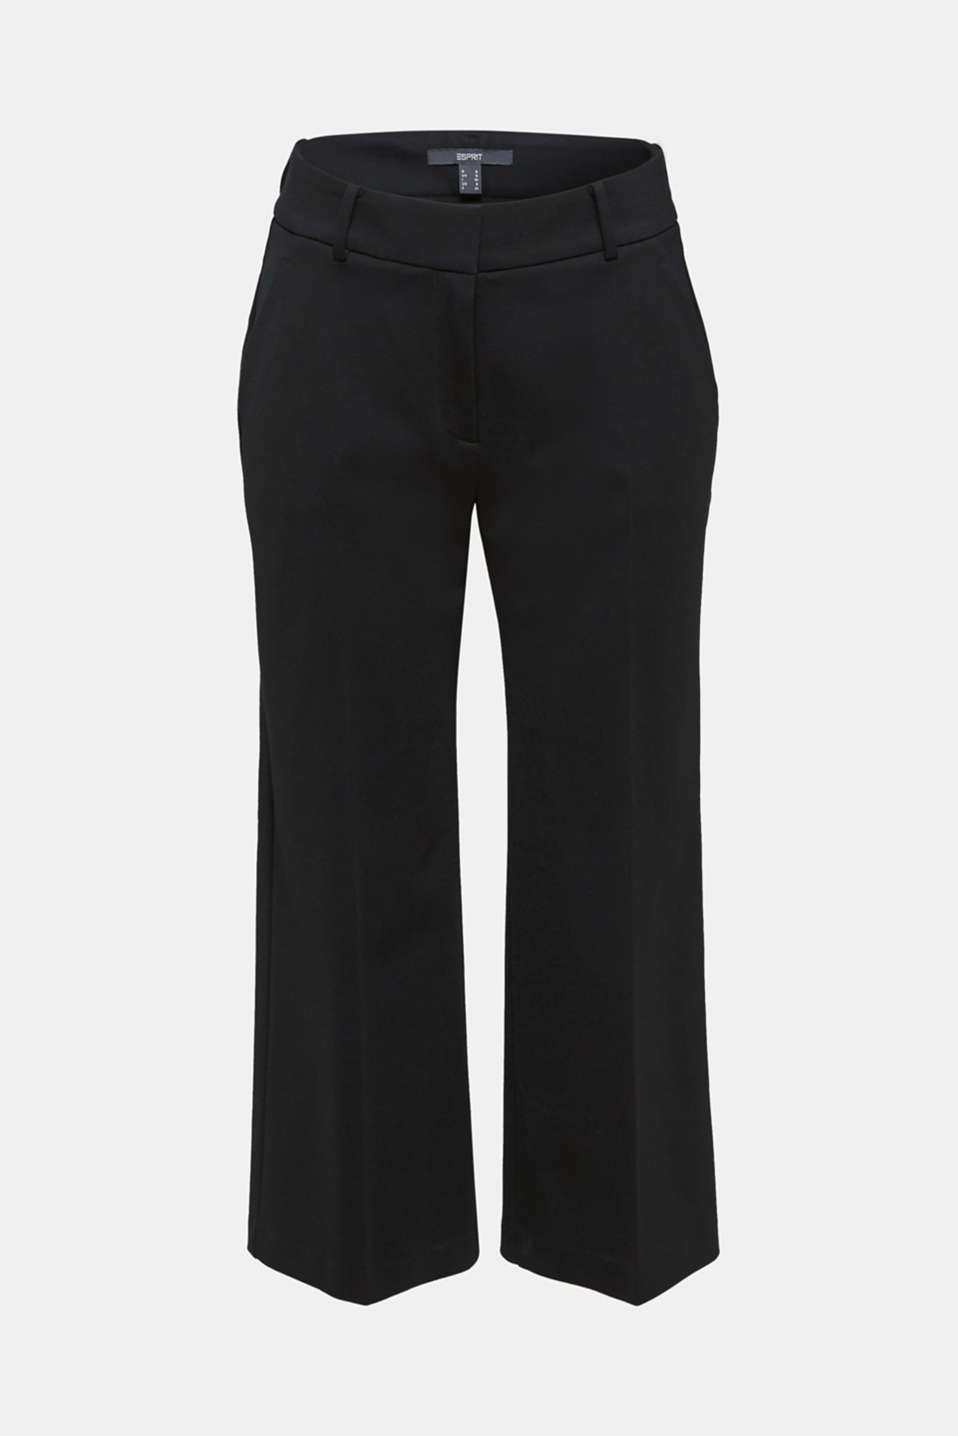 Stretch jersey culottes, BLACK, detail image number 5